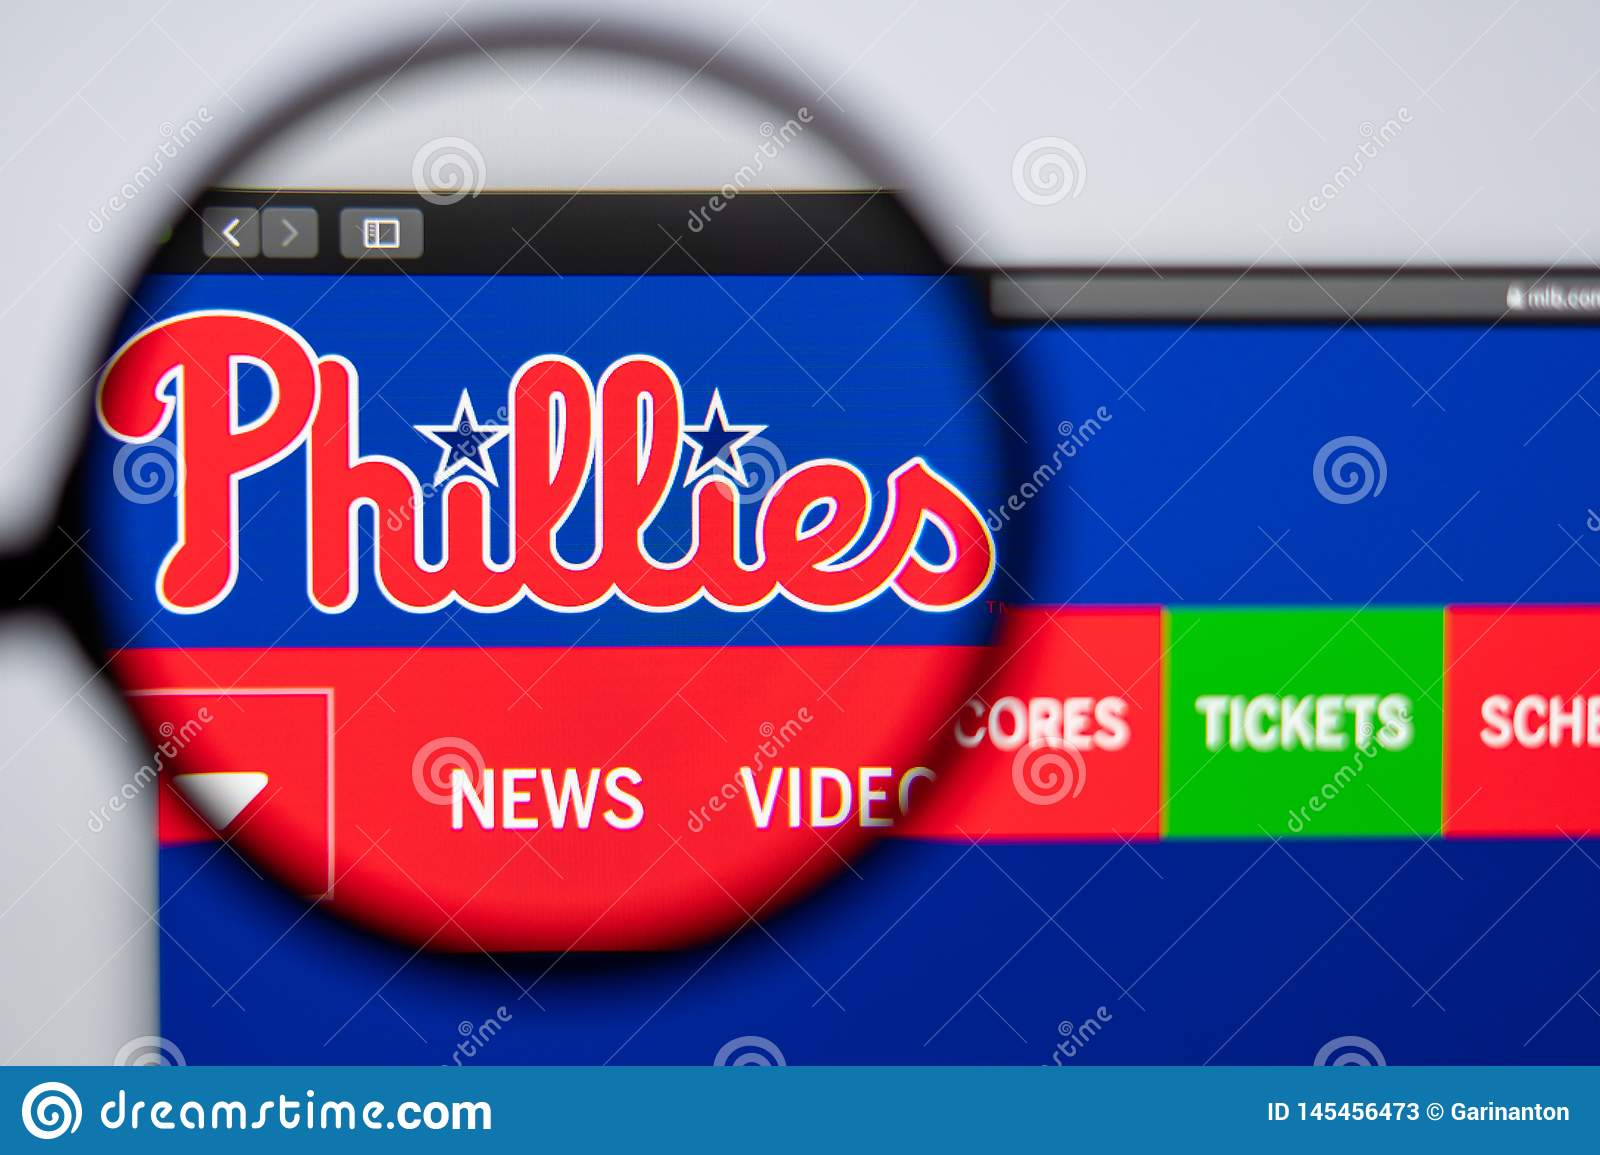 Baseball team Philadelphia Phillies website homepage. Close up of team logo.